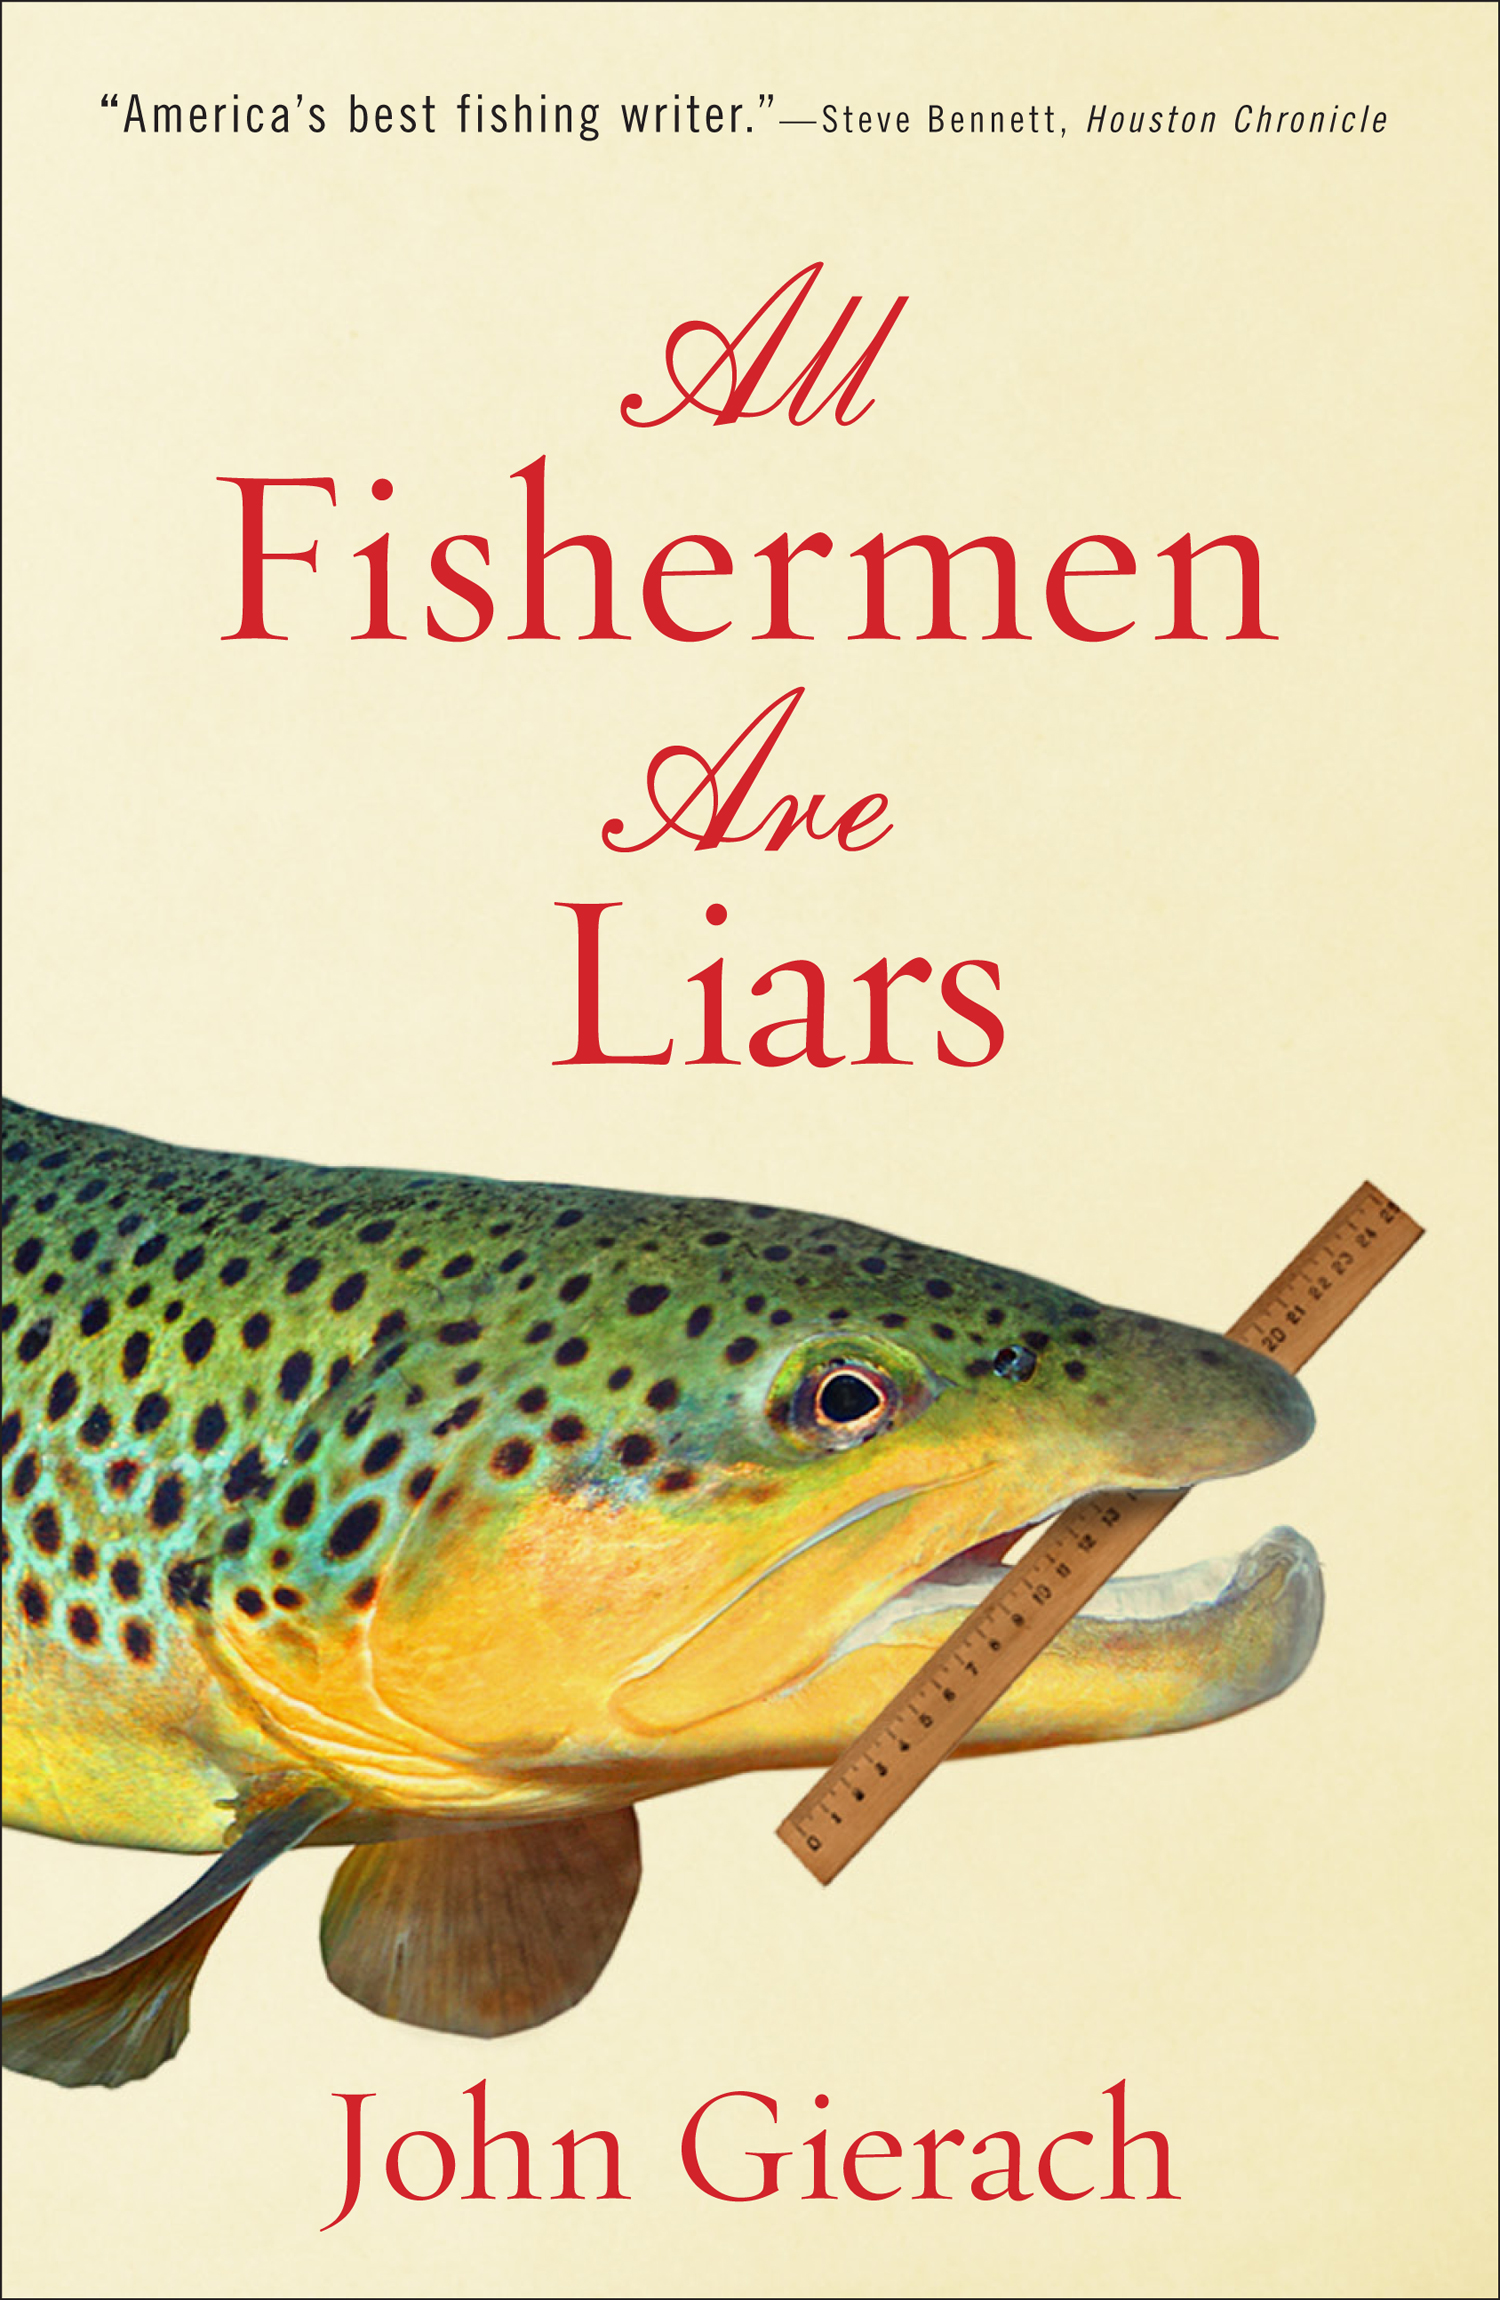 ALL-FISHERMEN-ARE-LIARS-comp-ss6.jpg